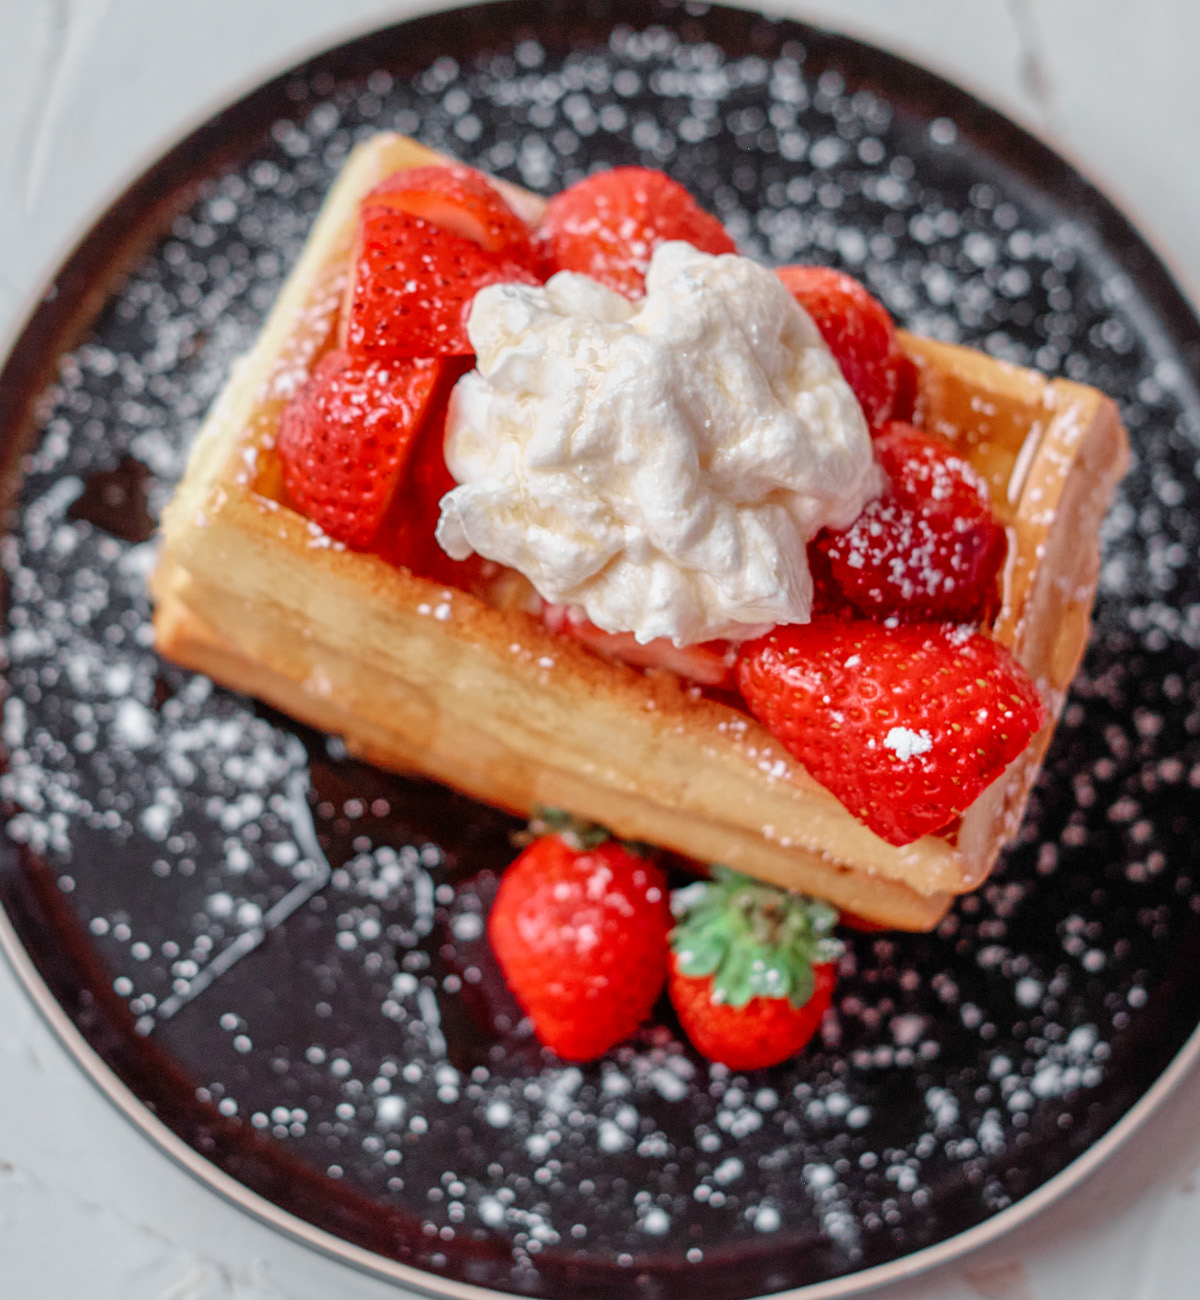 waffles with strawberries and whipped cream